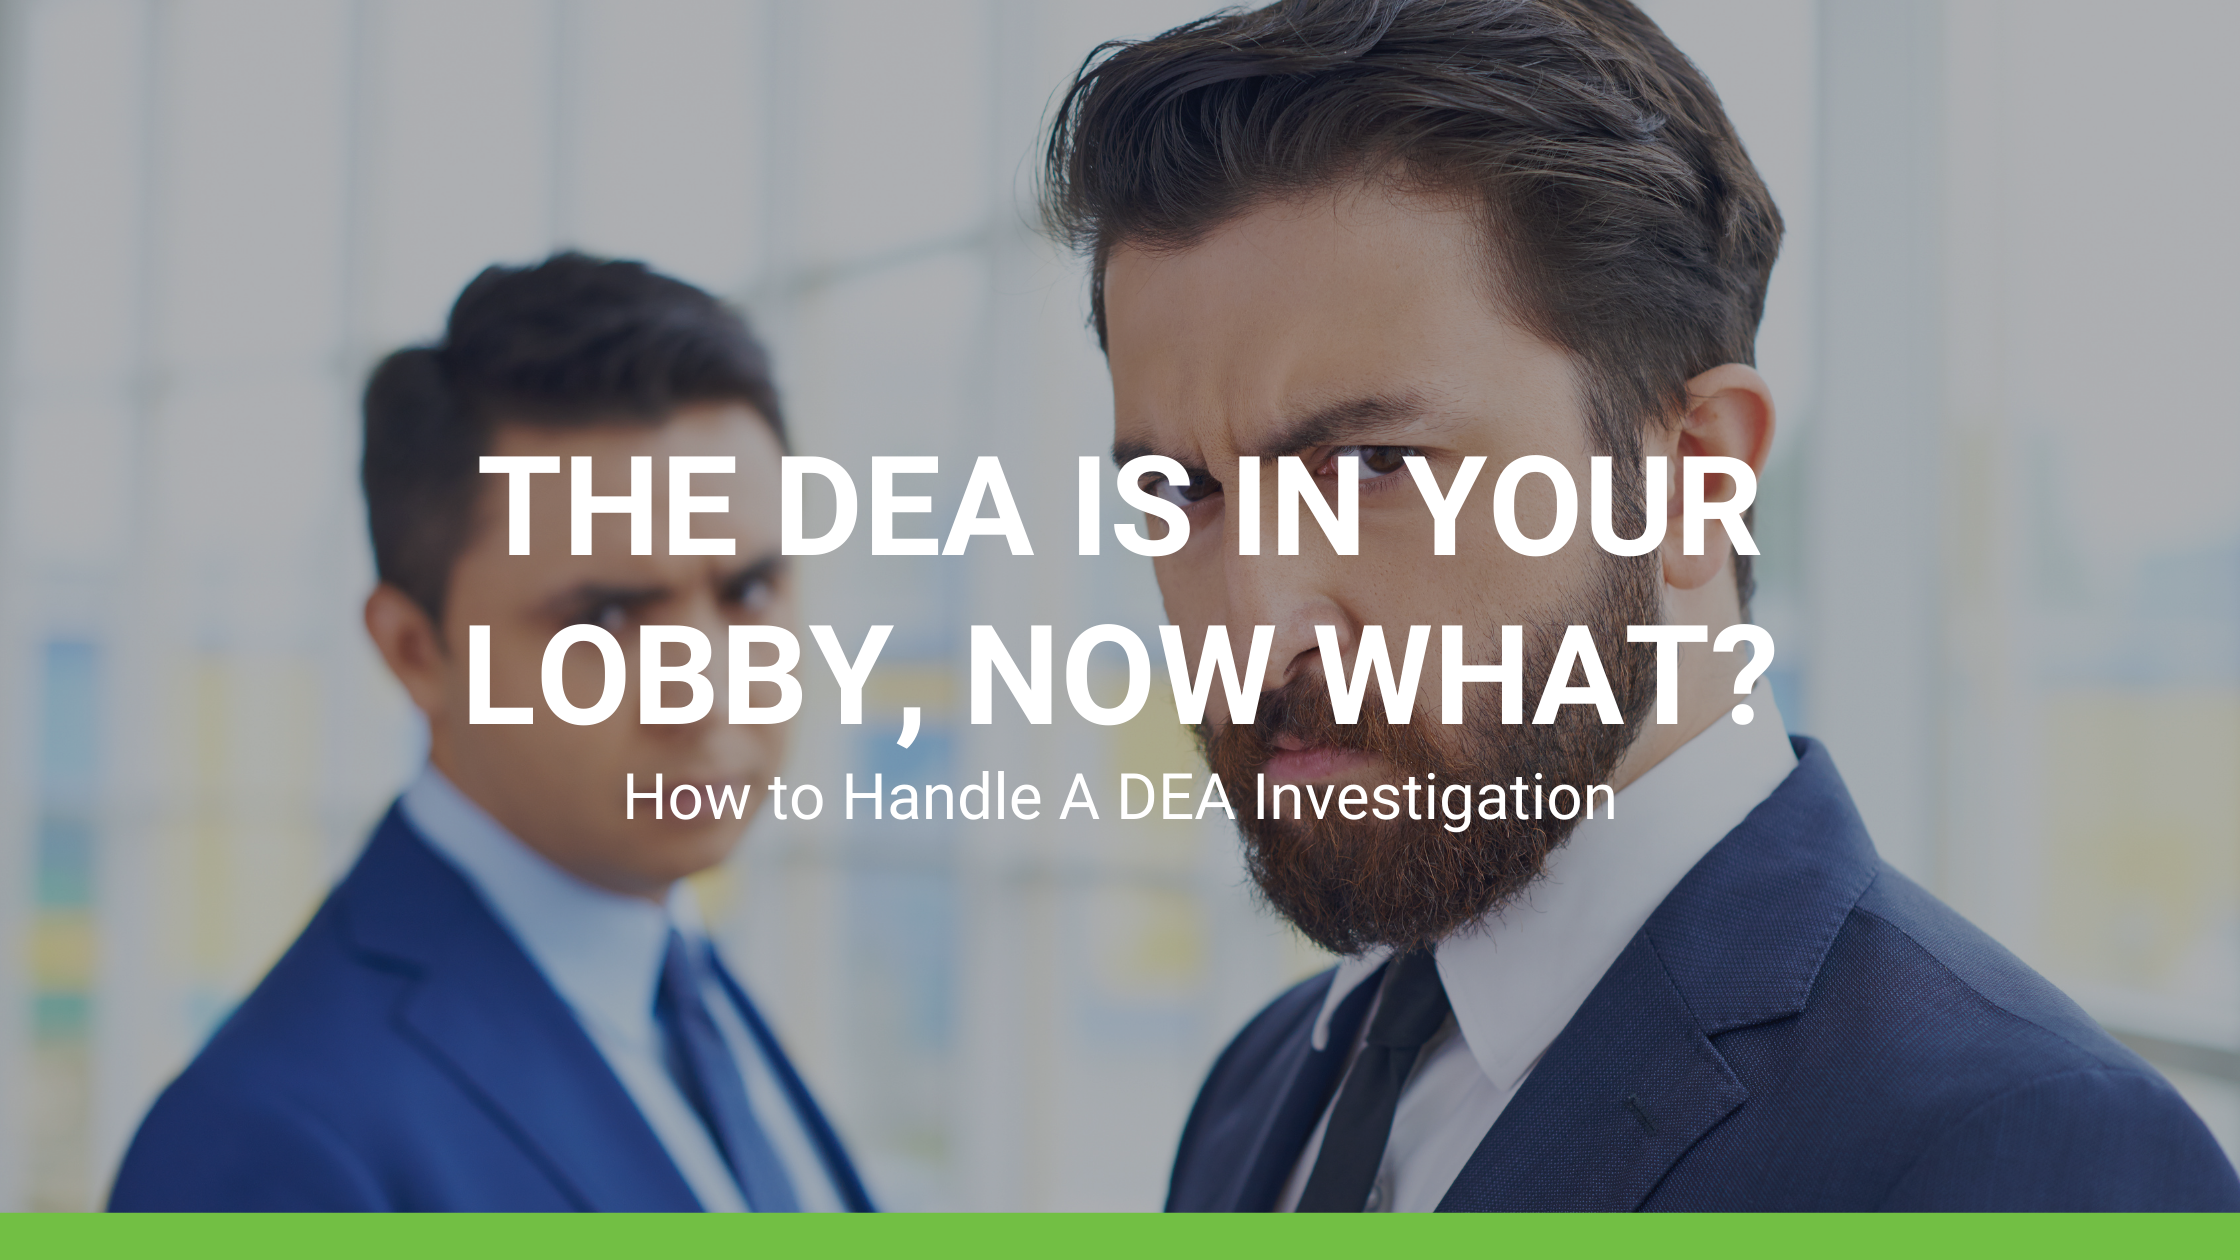 How to Handle A DEA Investigation: The DEA Is in Your Lobby, Now What?